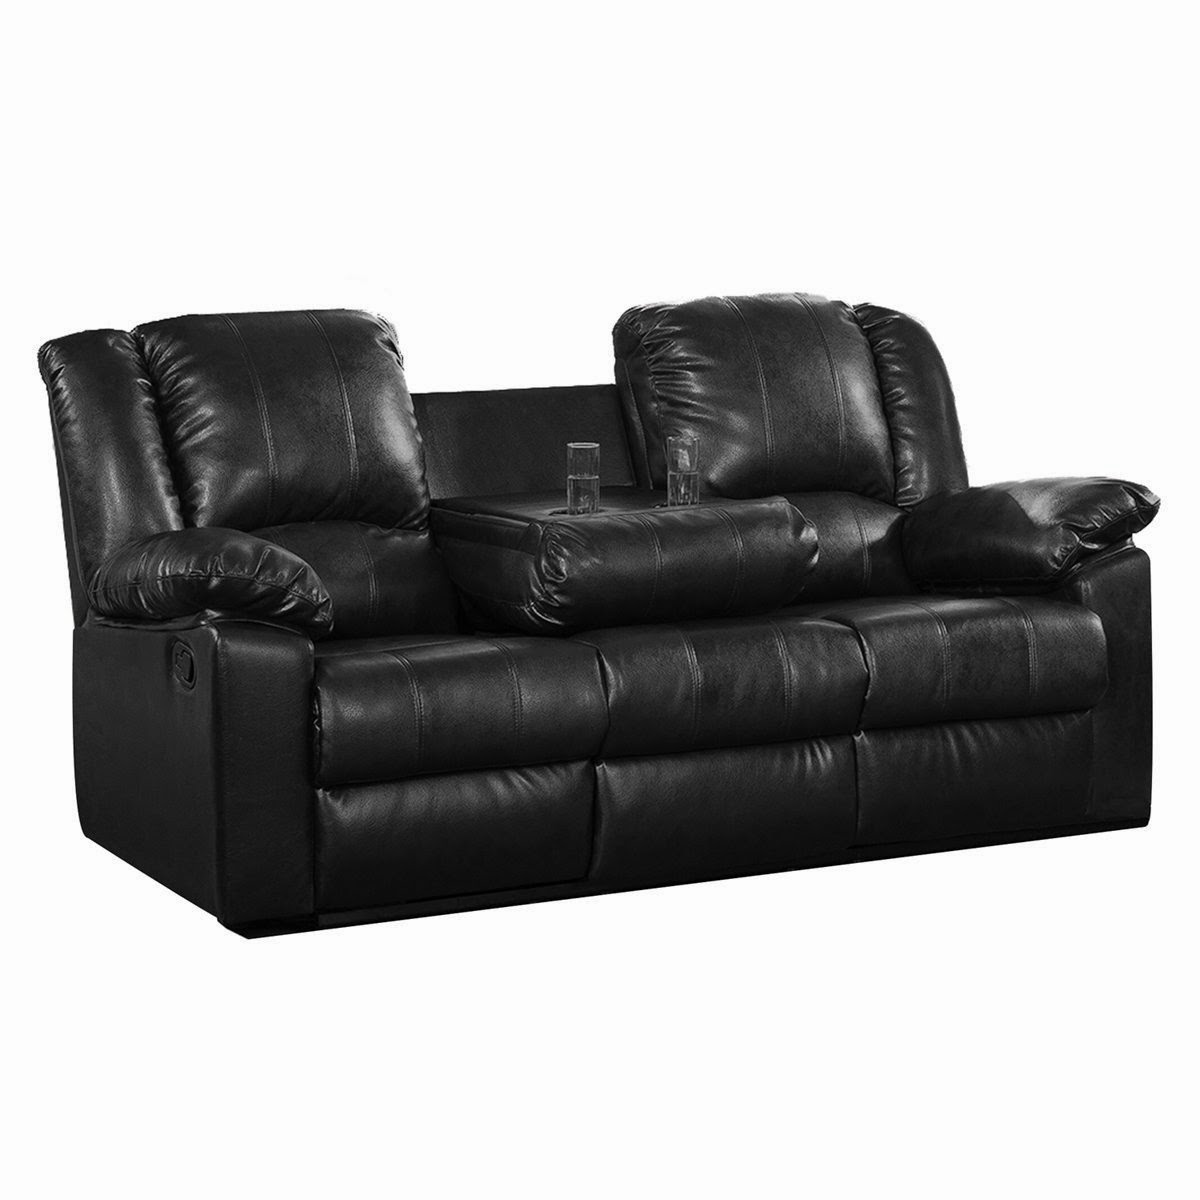 Recliner Sofa Sets: Reclining Sofa Sets Sale: Reclining Sofa Sets With Cup Holders